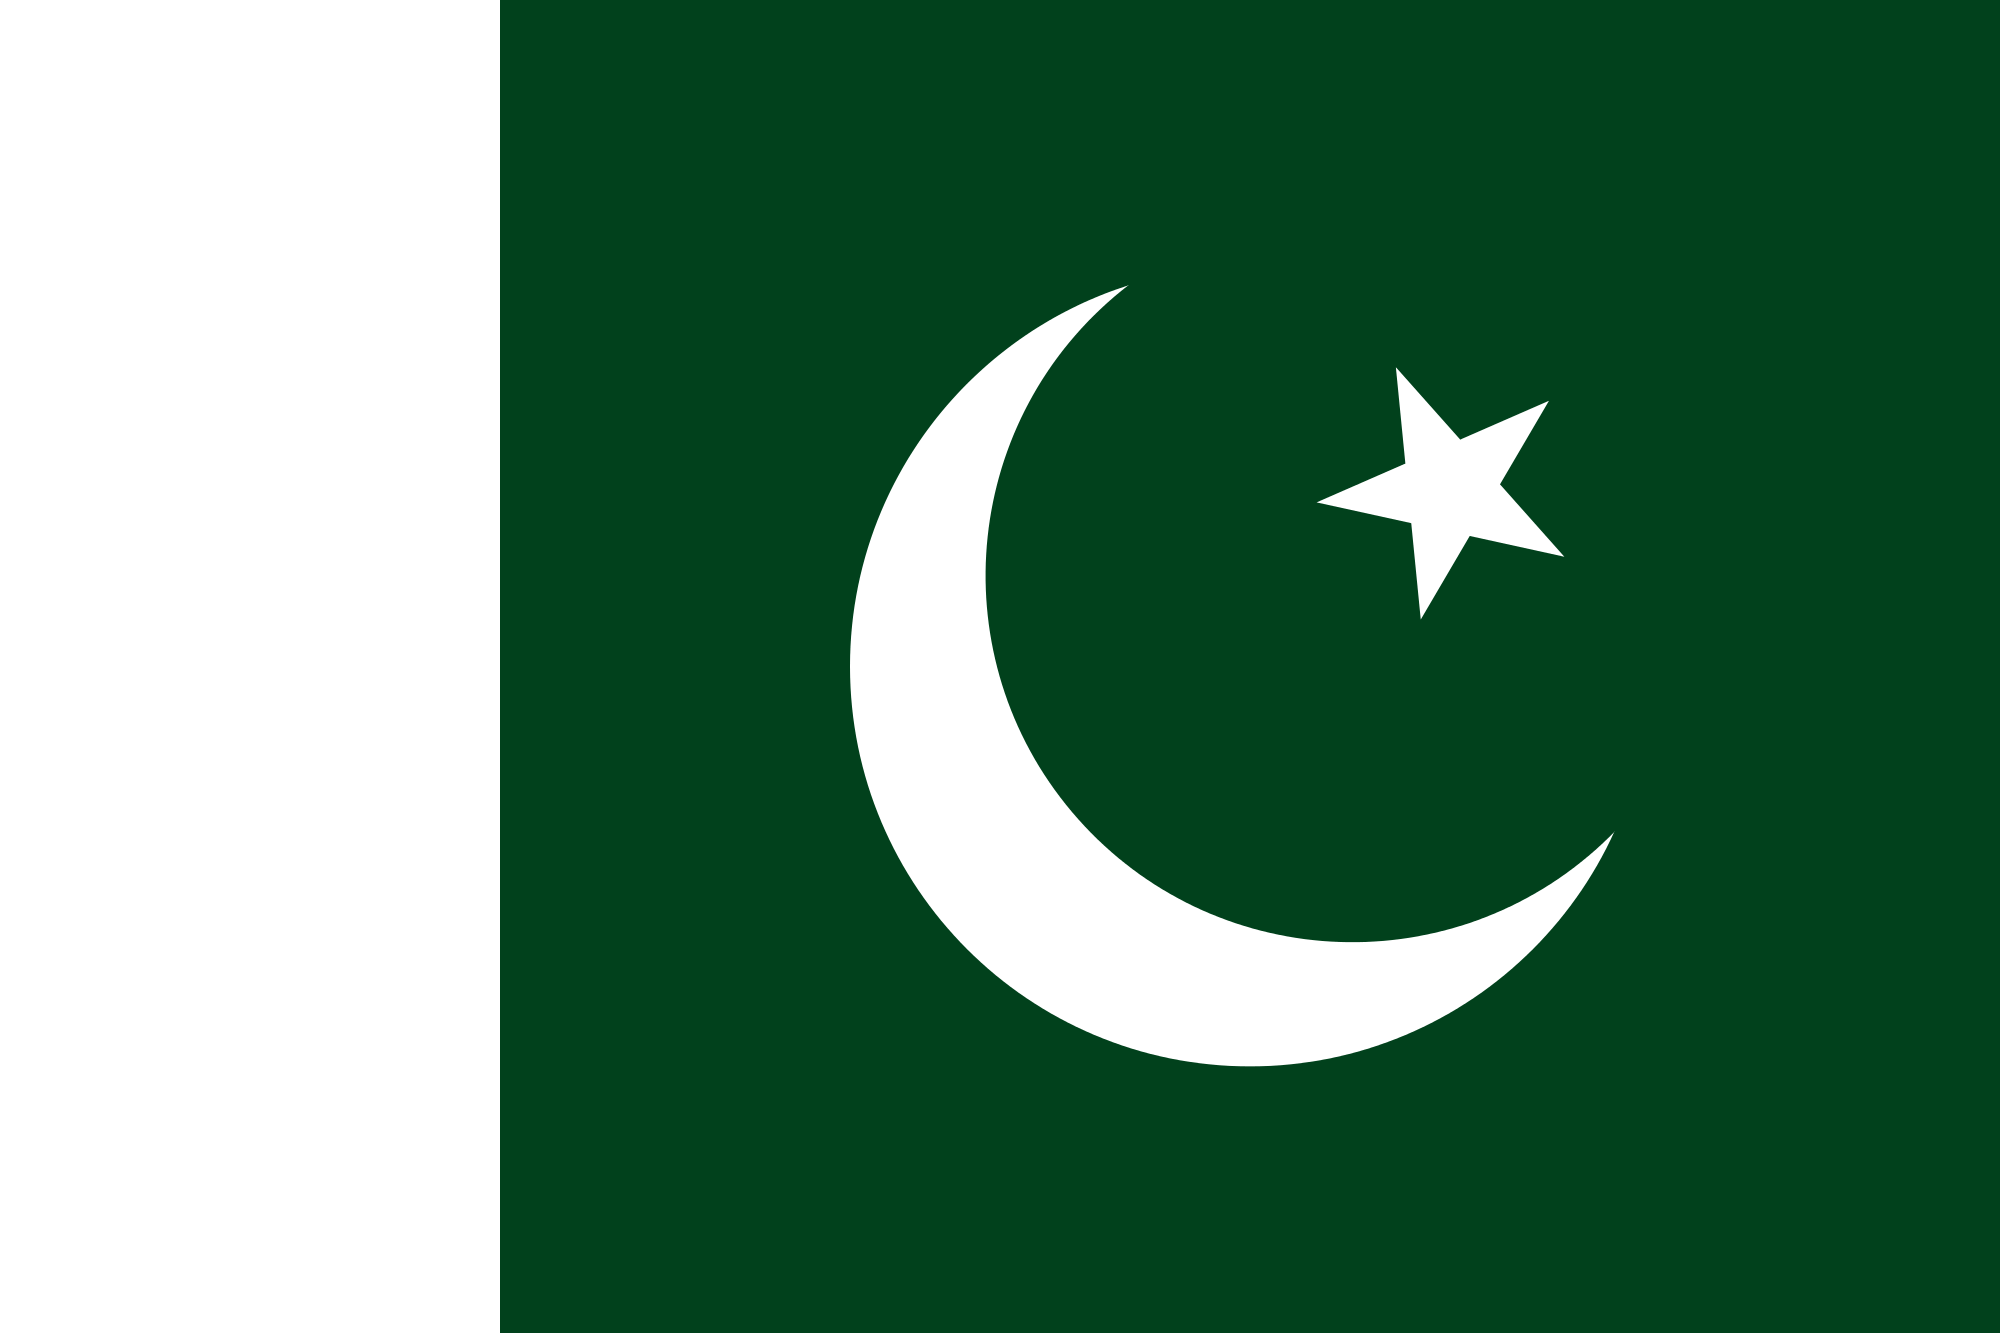 Crescent Moon Star And Green In Islamic Flags Fun Flag Facts